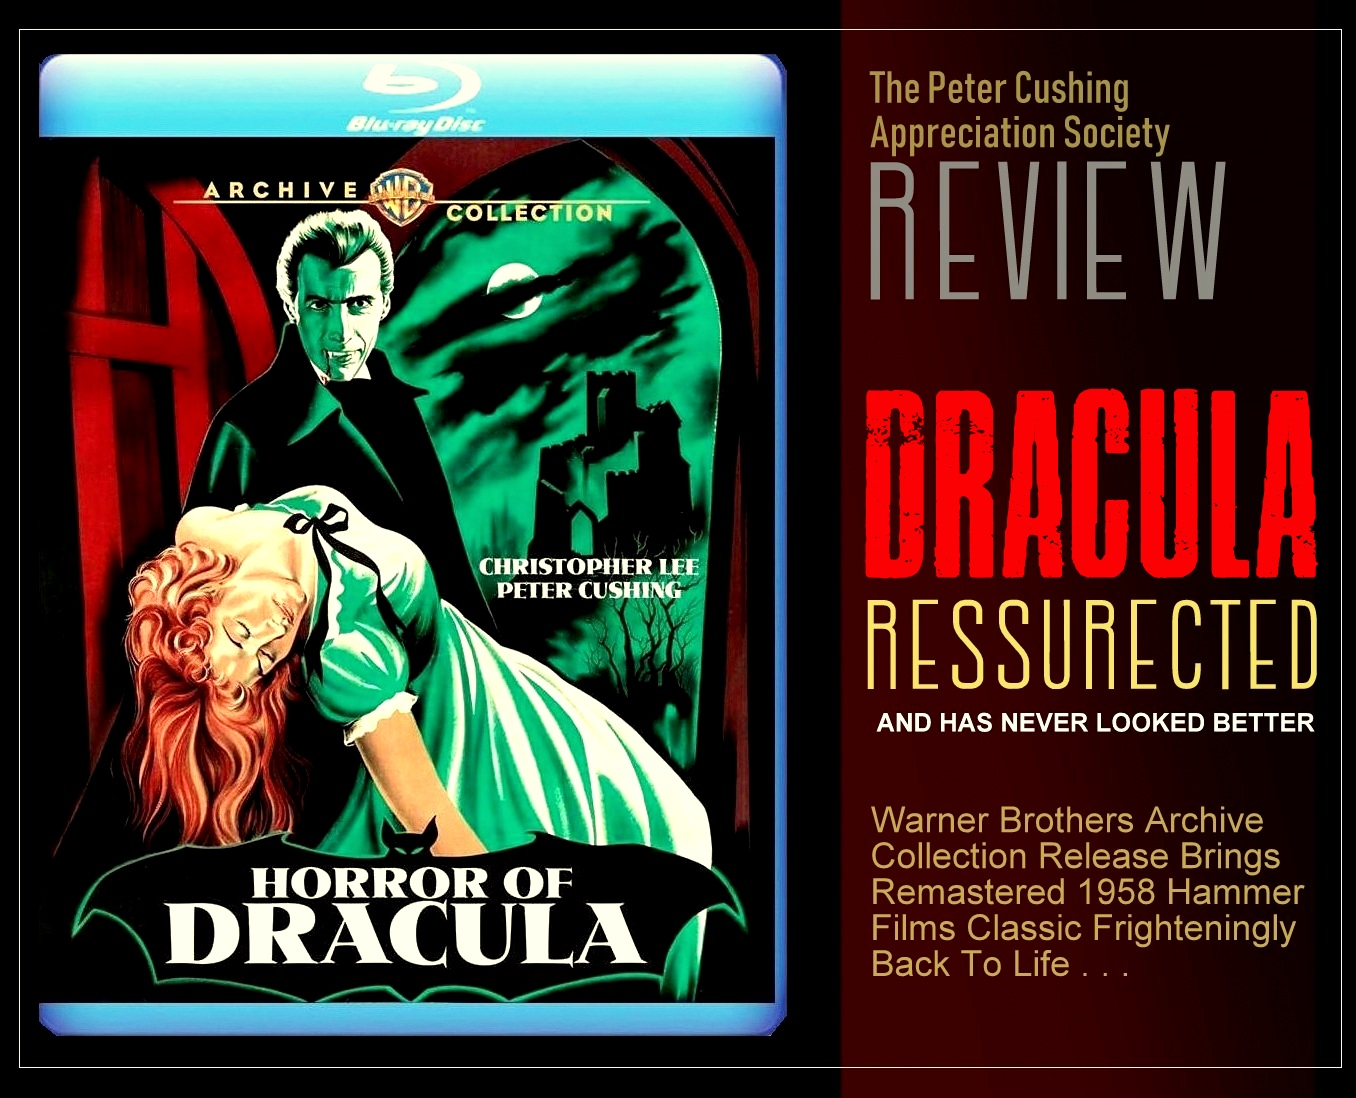 A FULL REVIEW OF WARNER BROS ARCHIVES HORROR OF DRACULA RESURRECTED REMASTERED BLU RAY